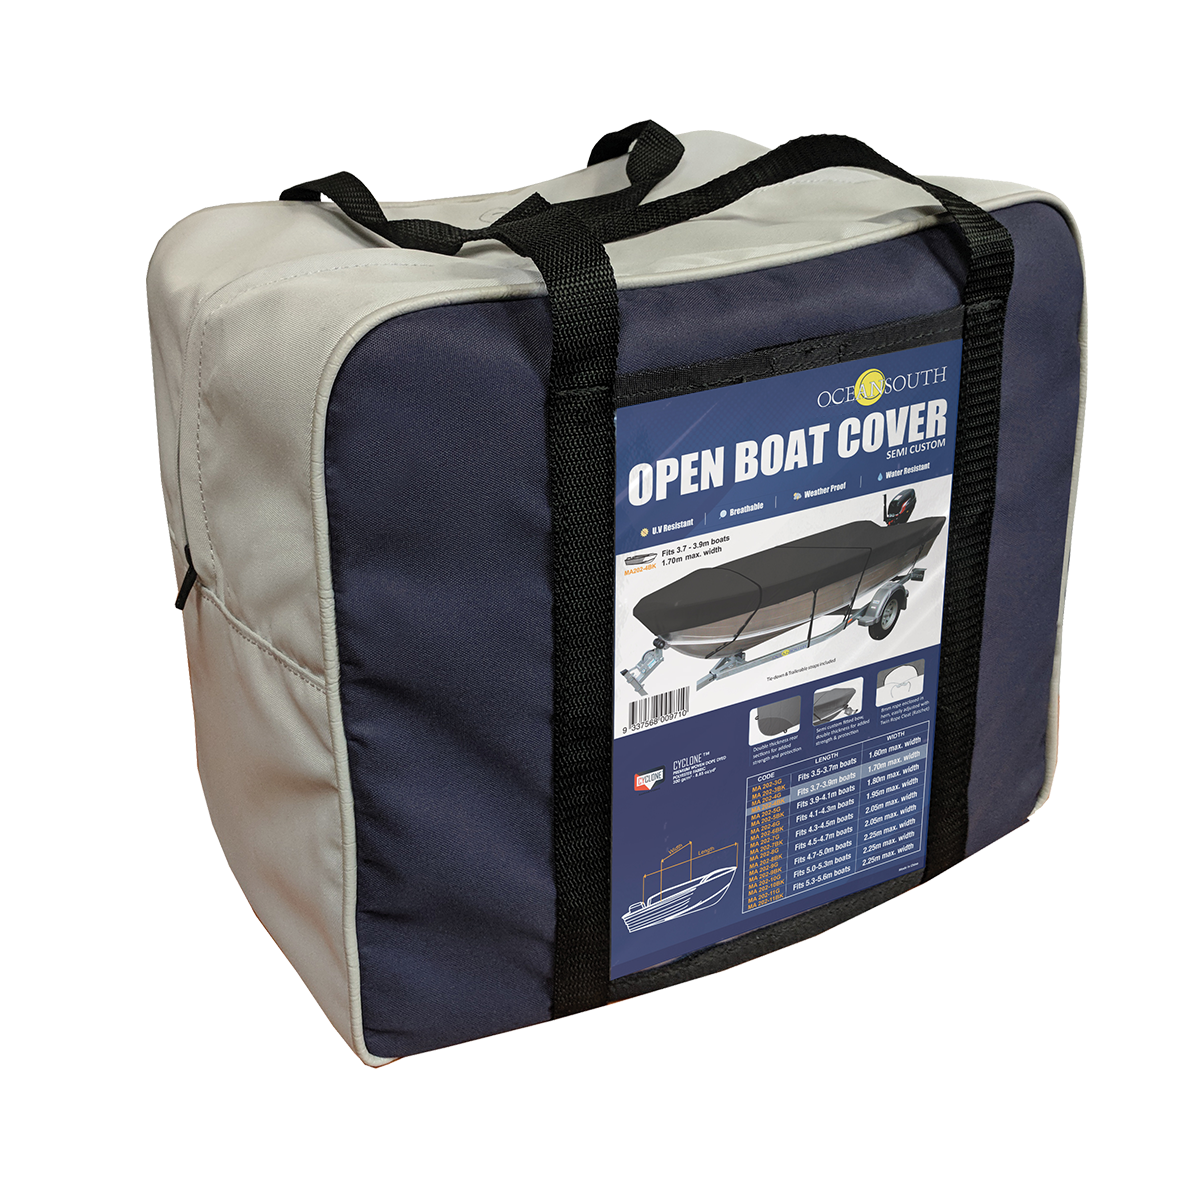 Open Boat Cover Bag